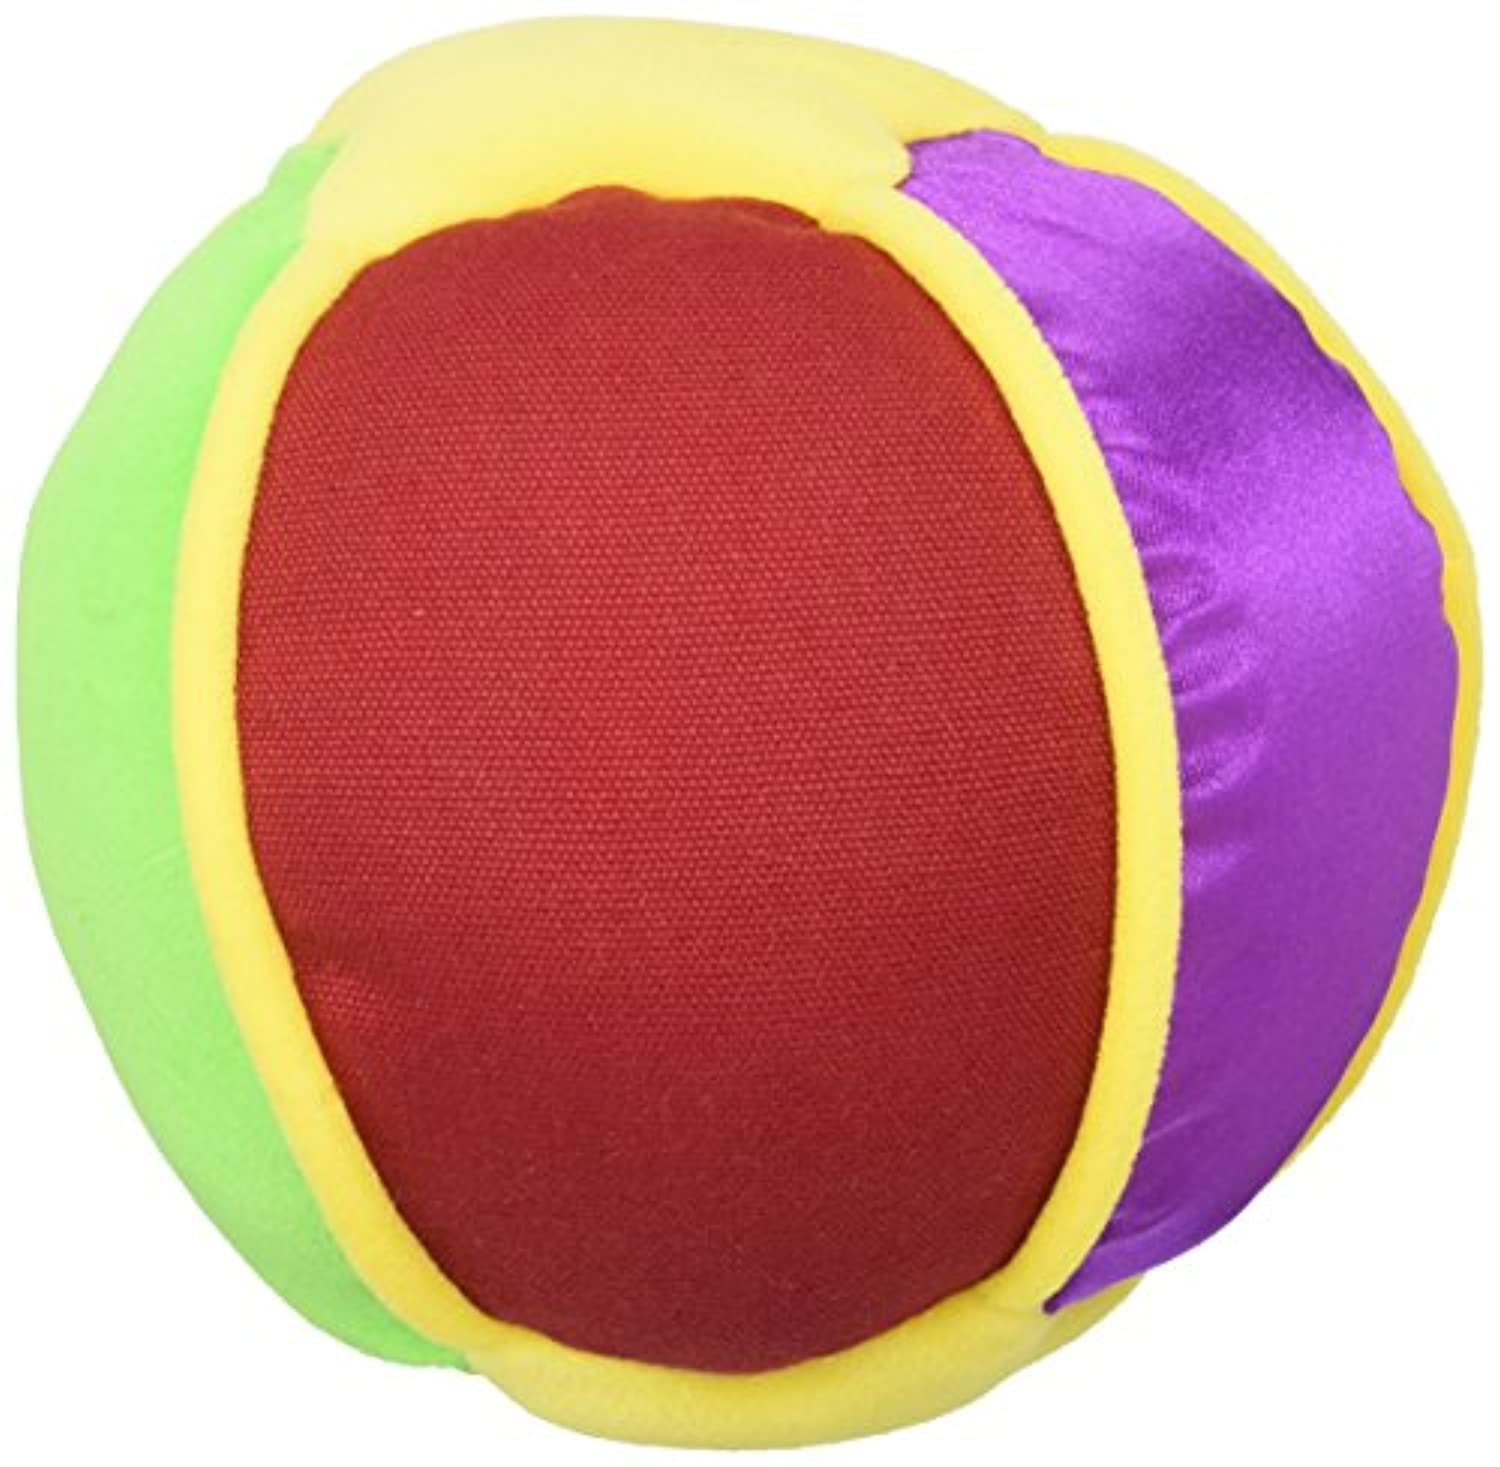 Giggle Toys Jingle Jangle Star Chime Ball, Rainbow by Giggle Toys